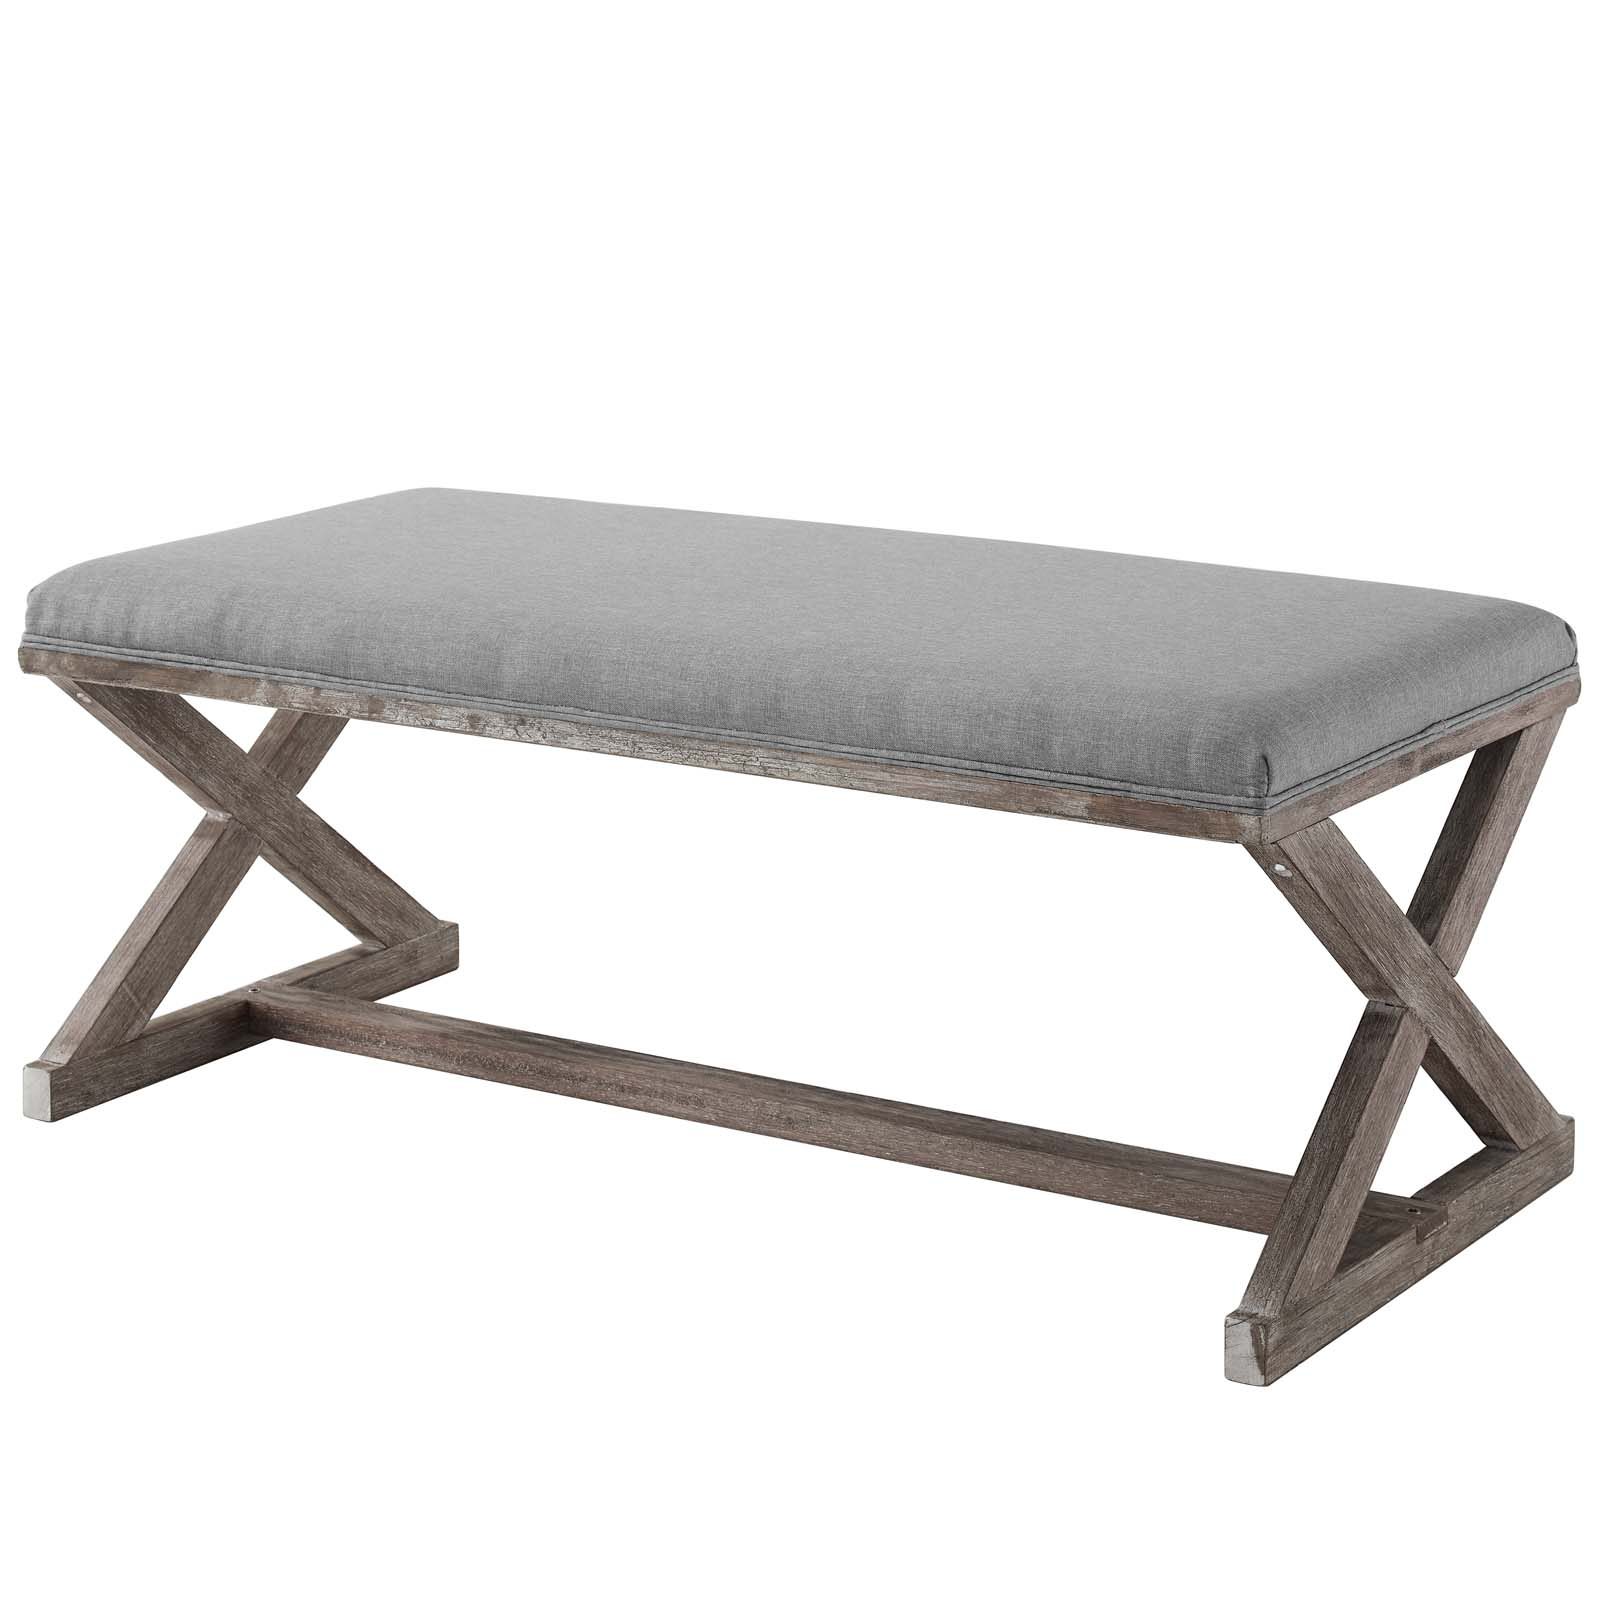 Picture of: Industrial Country Farm Beach House Living Room Lounge Club Lobby Accent Chair Bench Vintage Style Fabric Wood Light Grey Gray Walmart Com Walmart Com